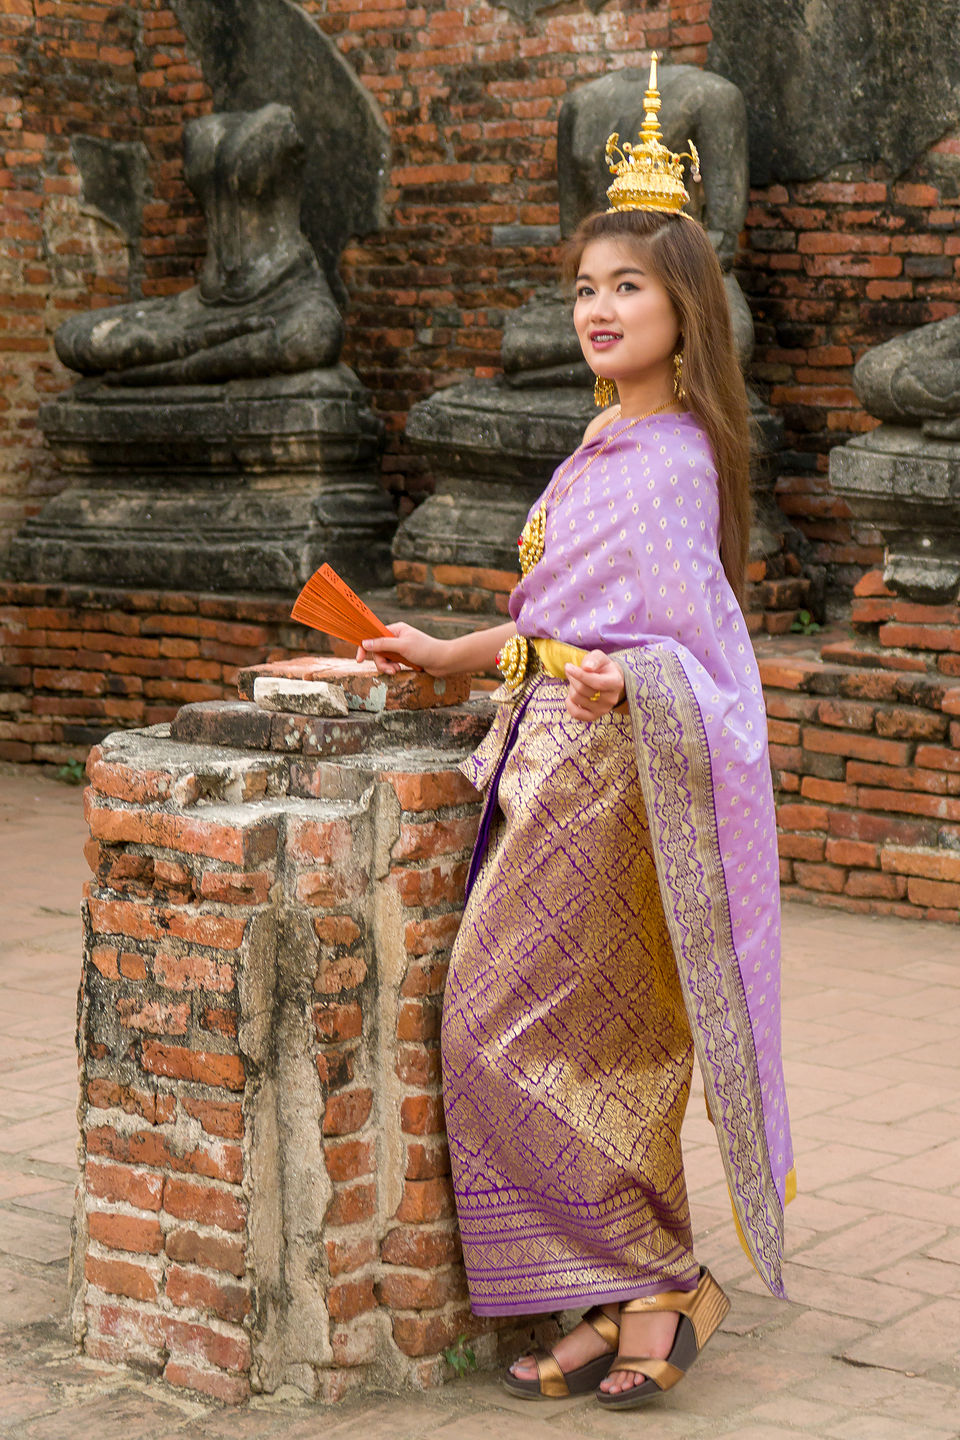 Traditional Thai dress at Chai Watthanaram Temple